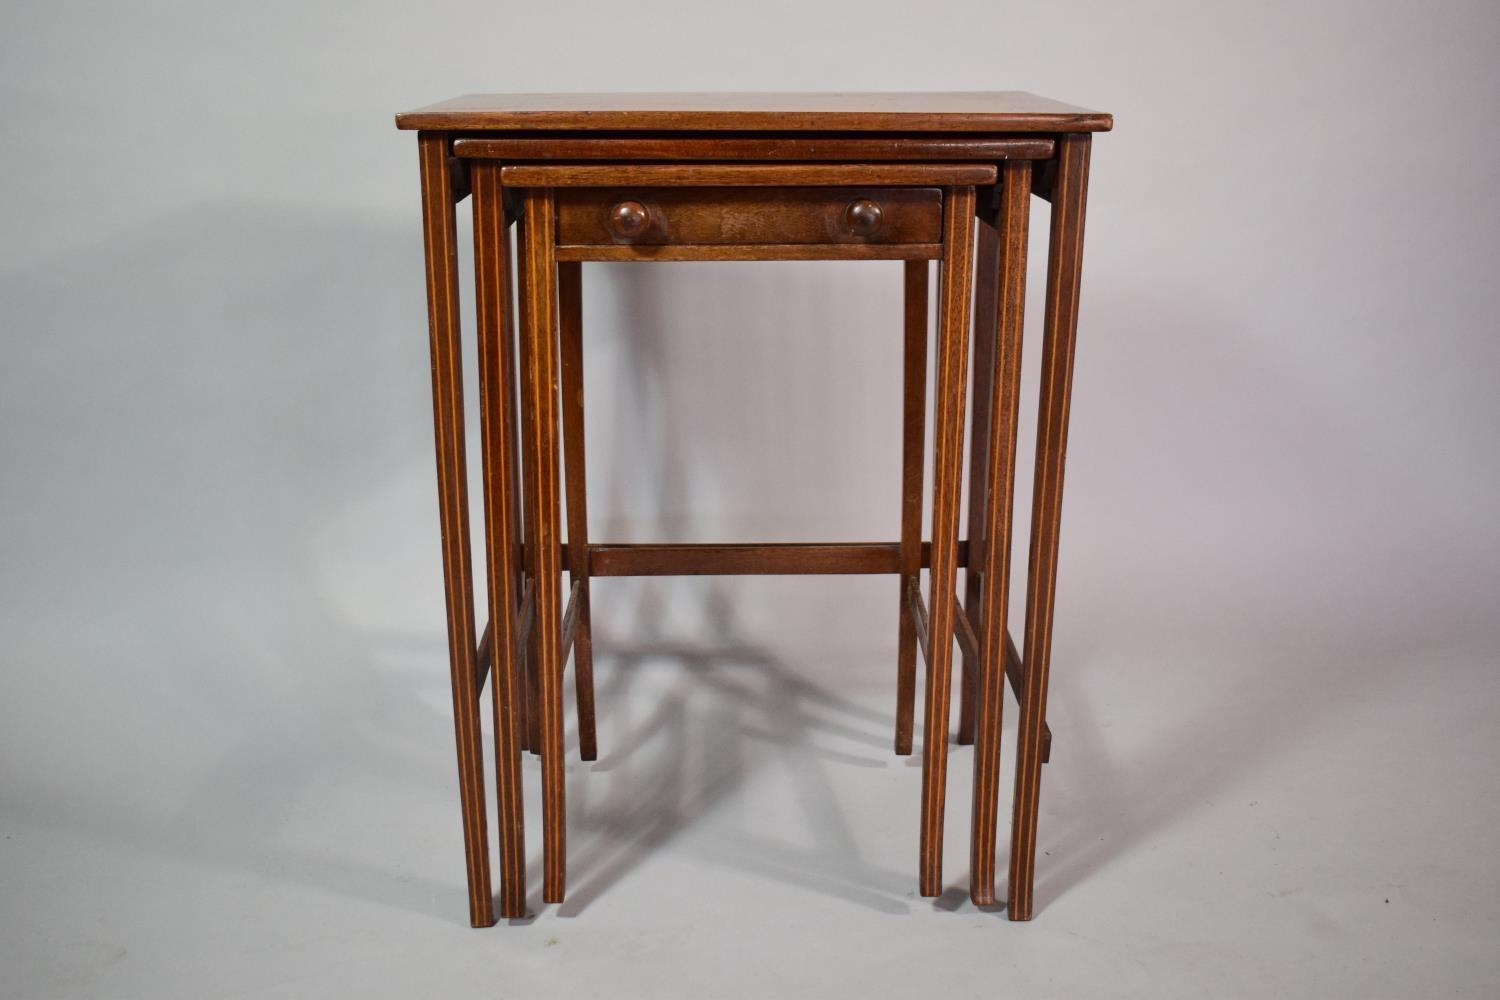 Lot 29 - A 19th Century String Inlaid Mahogany Nest of Three Tables. The Smallest Having Drawer. 51x38x64cms